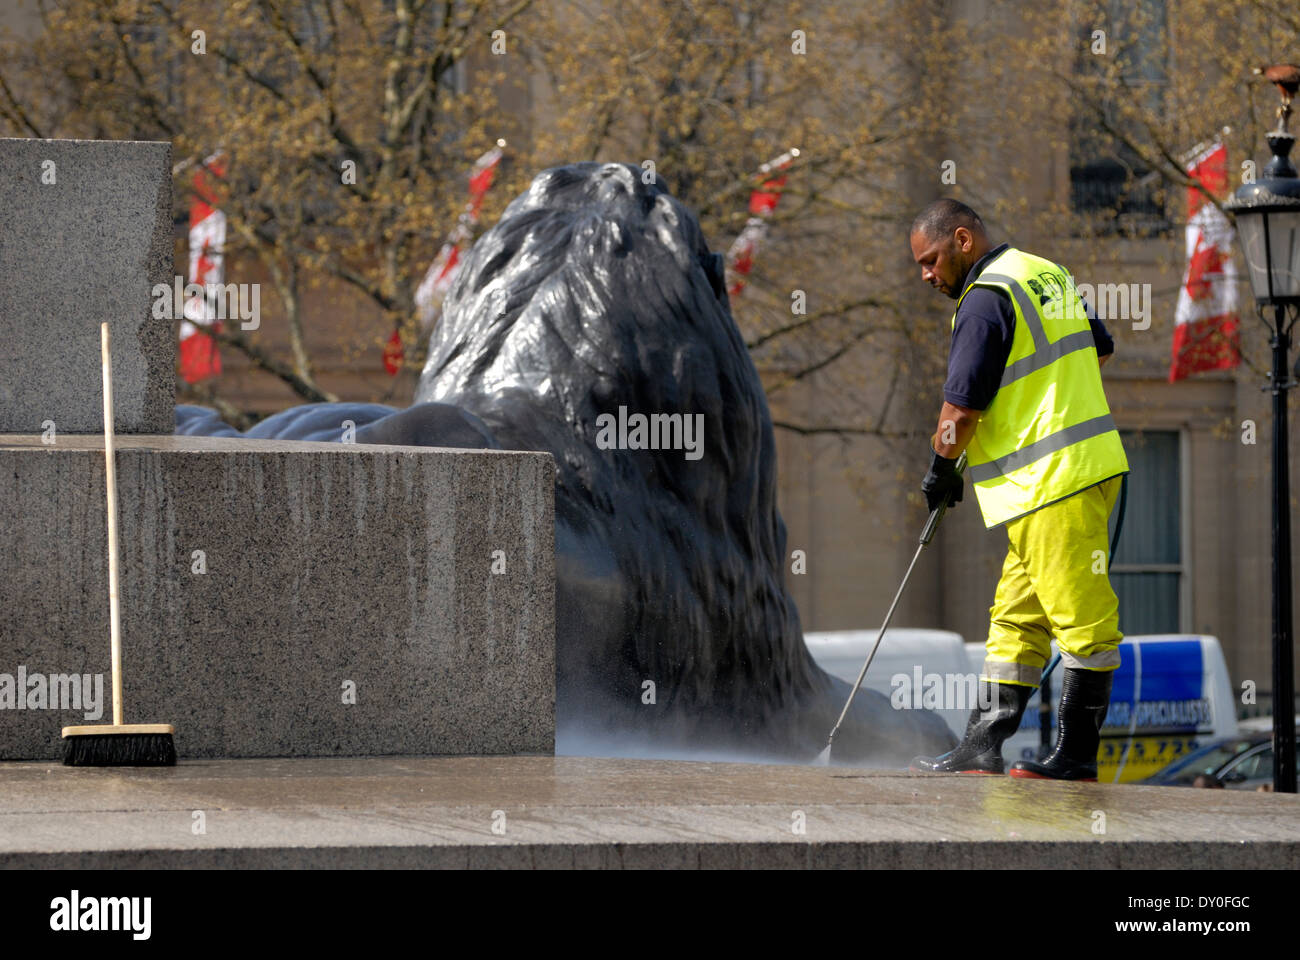 London, England, UK. Worker in hi-vis jacket cleaning the base of Nelson's Column with a power hose - Stock Image